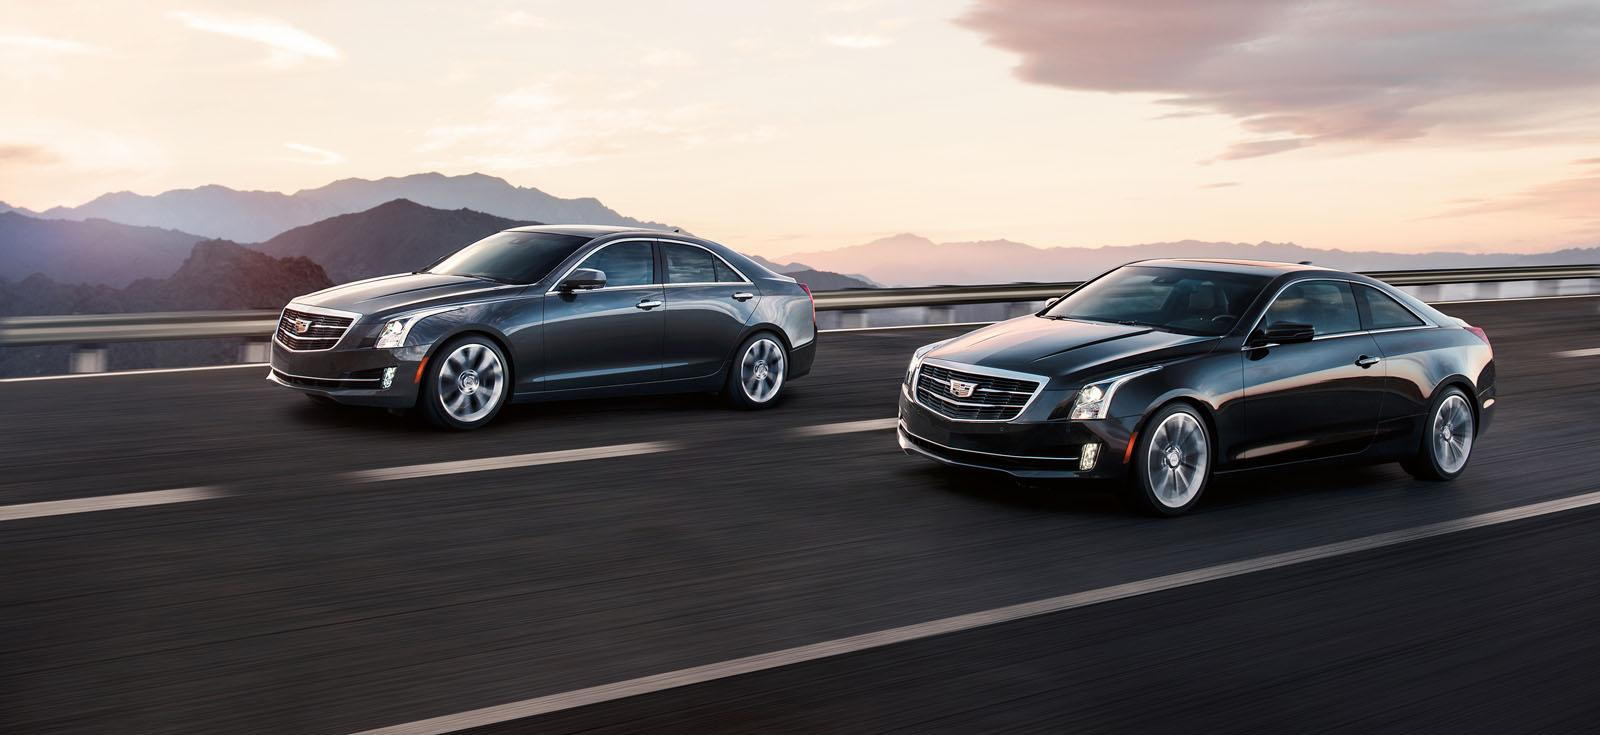 2015 cadillac ats sedan officially unveiled autoevolution. Black Bedroom Furniture Sets. Home Design Ideas